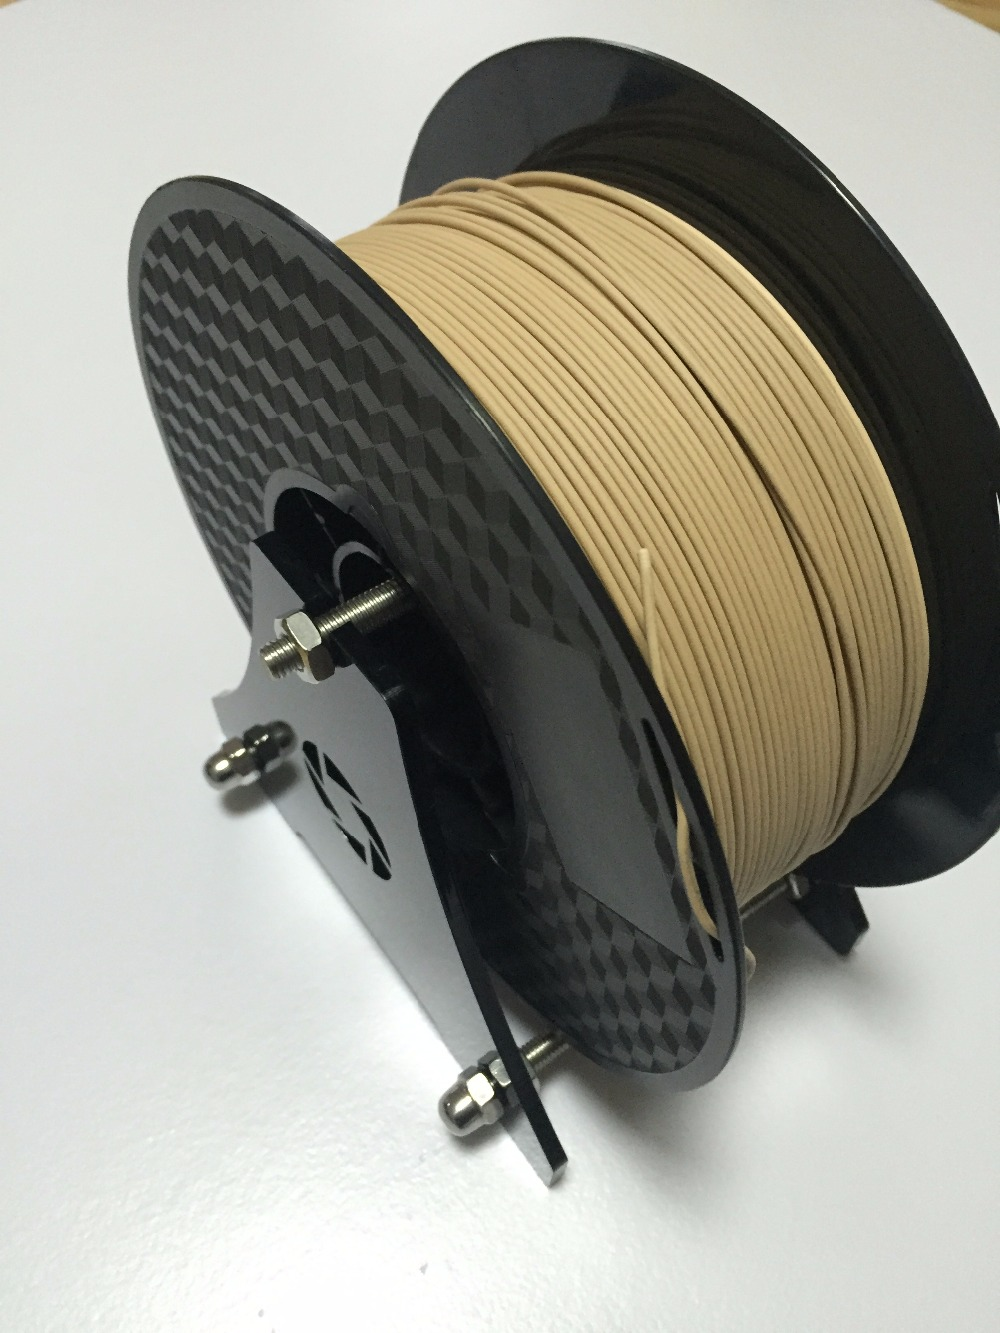 Acrylic 3D printer filament Spool, holder spool holder, supporting ...